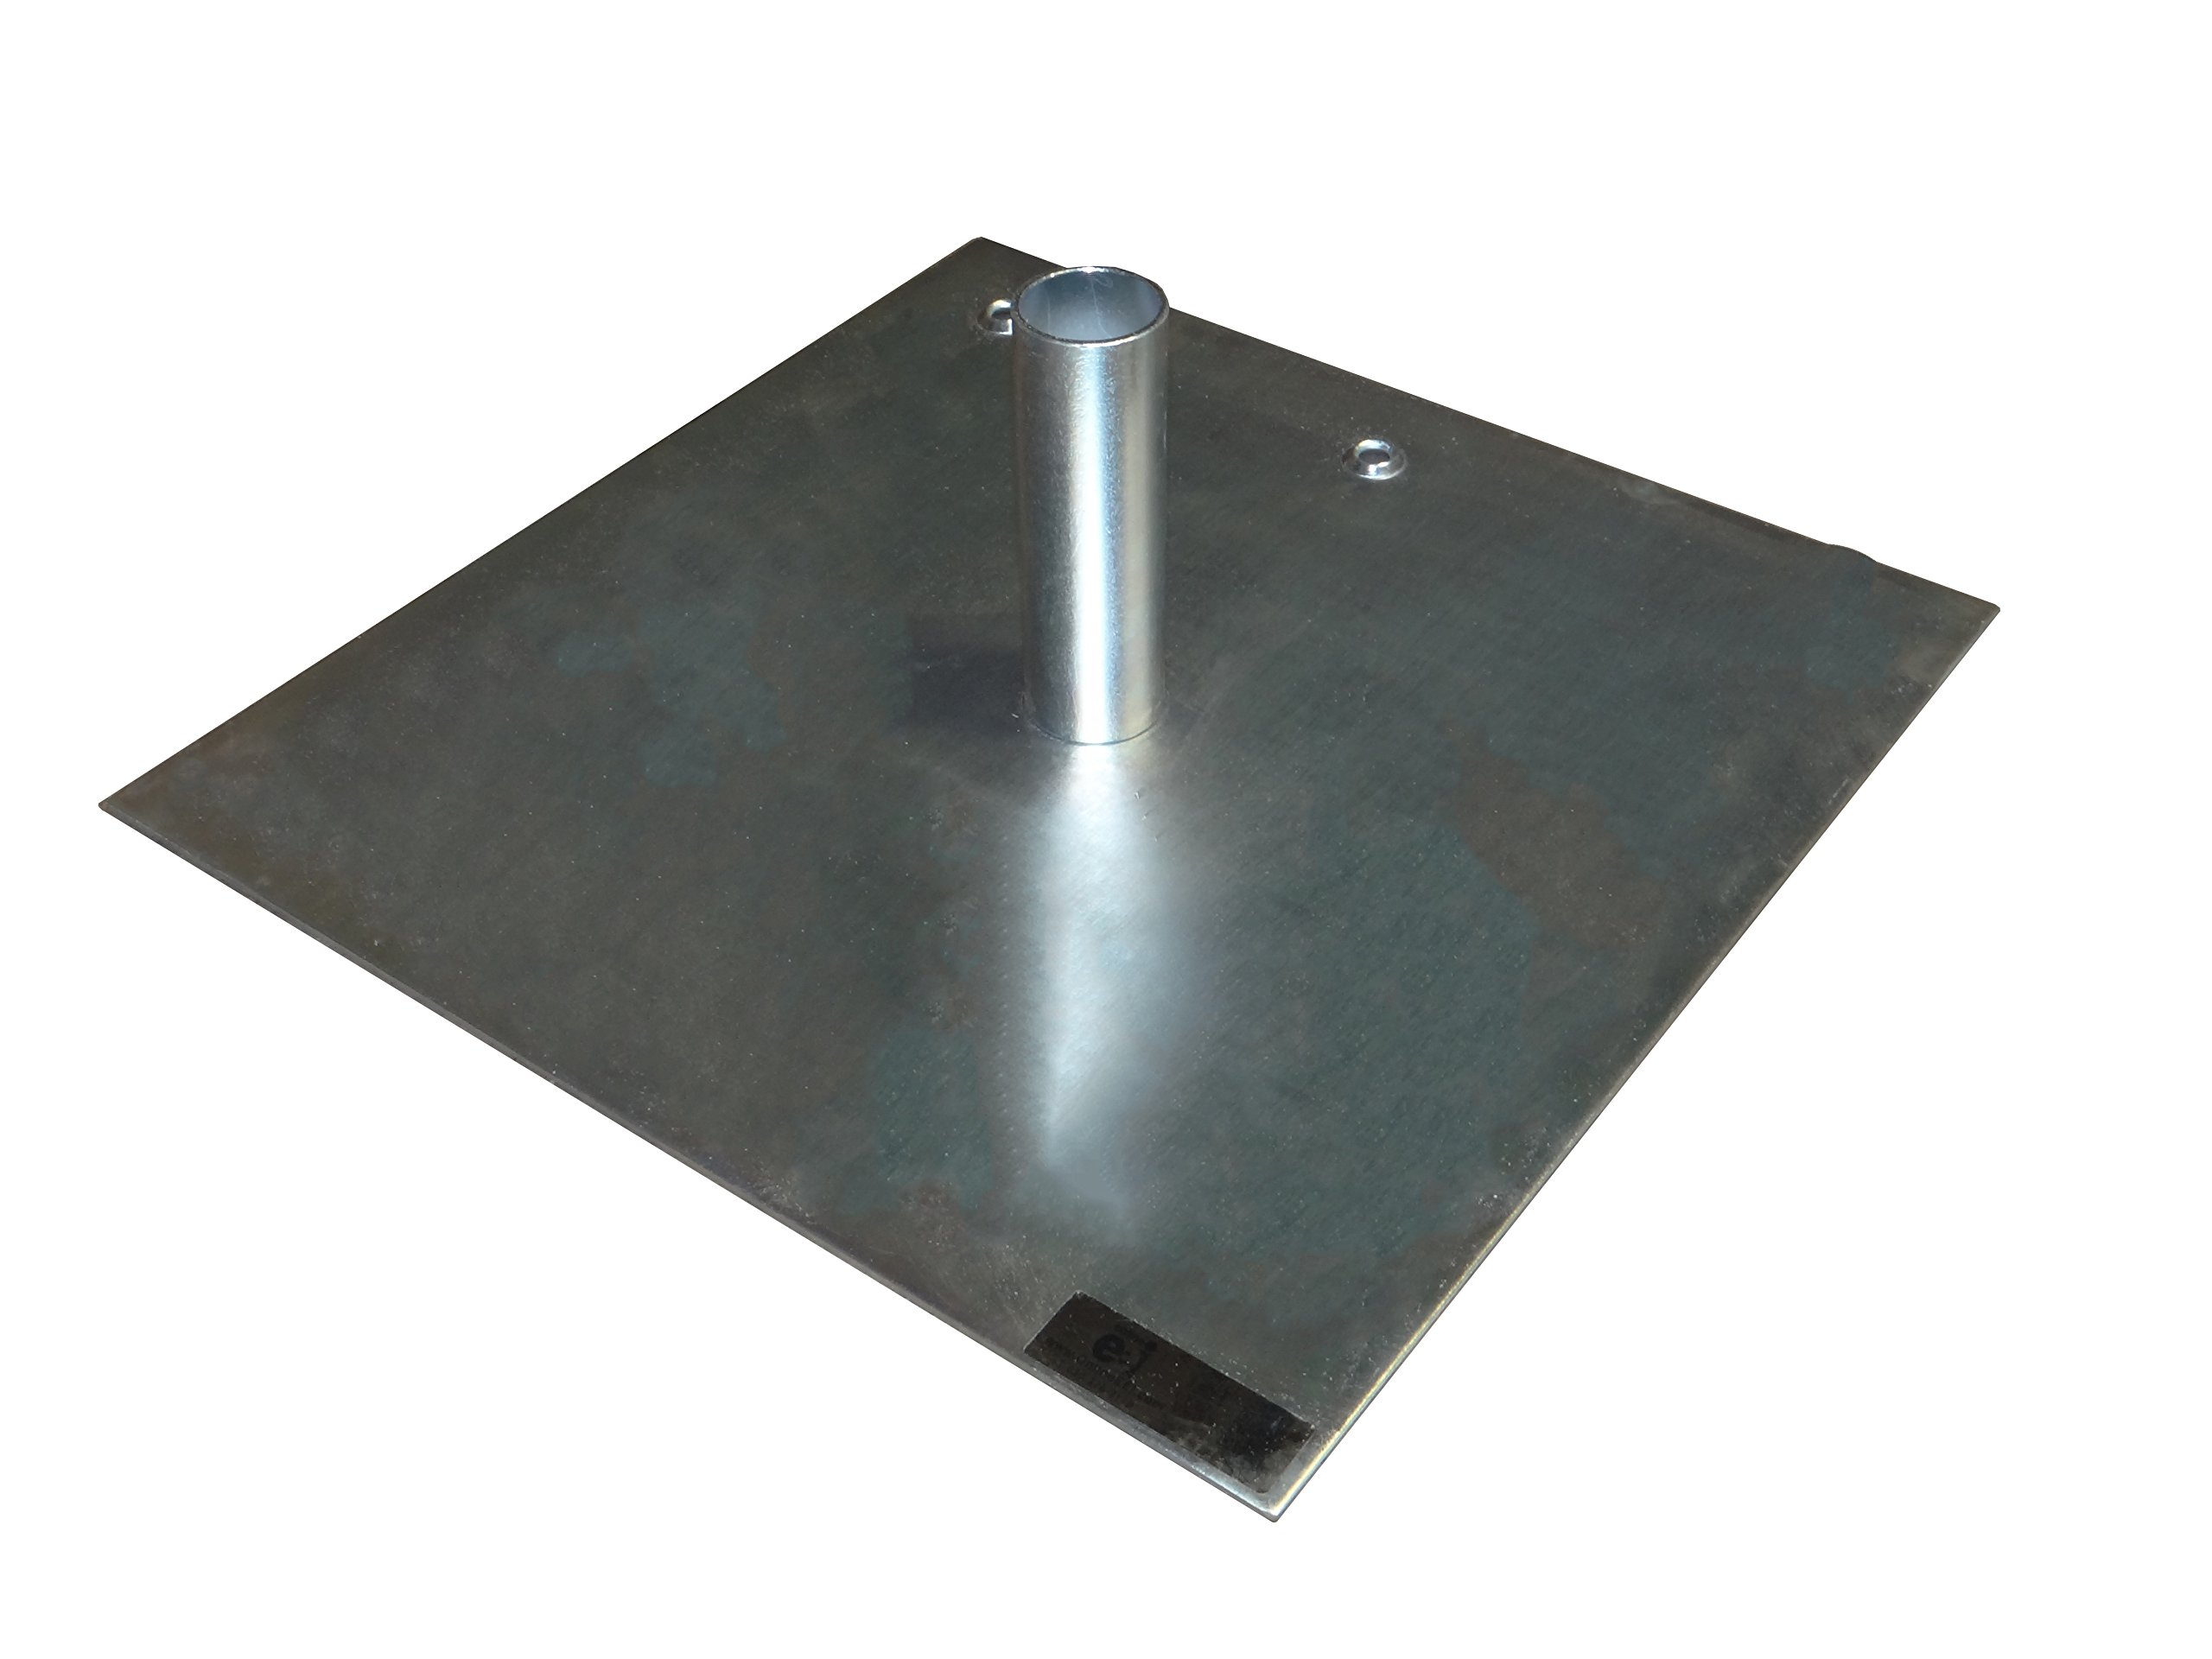 OnlineEEI Base Plate, Zinc Coated Steel, for use with Pipe and Drape System, 18''x18''3/16'', 17lb by OnlineEEI